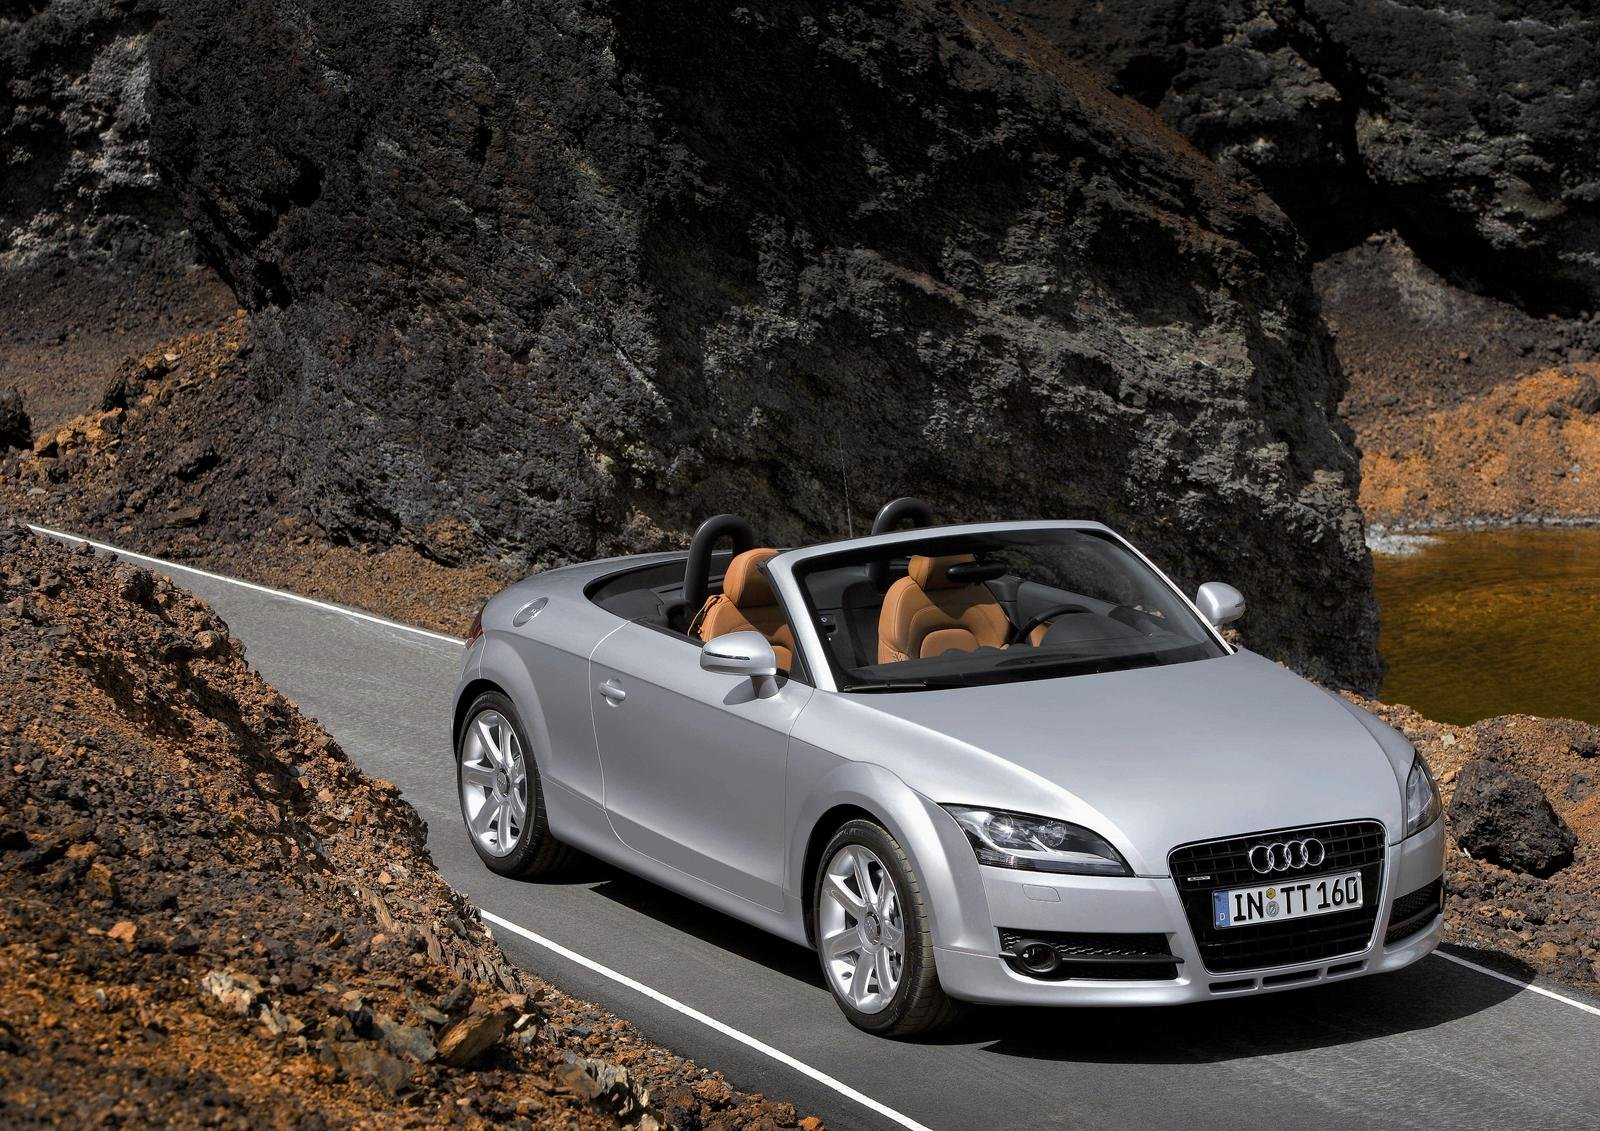 2007 audi tt roadster picture 117574 car review top speed. Black Bedroom Furniture Sets. Home Design Ideas